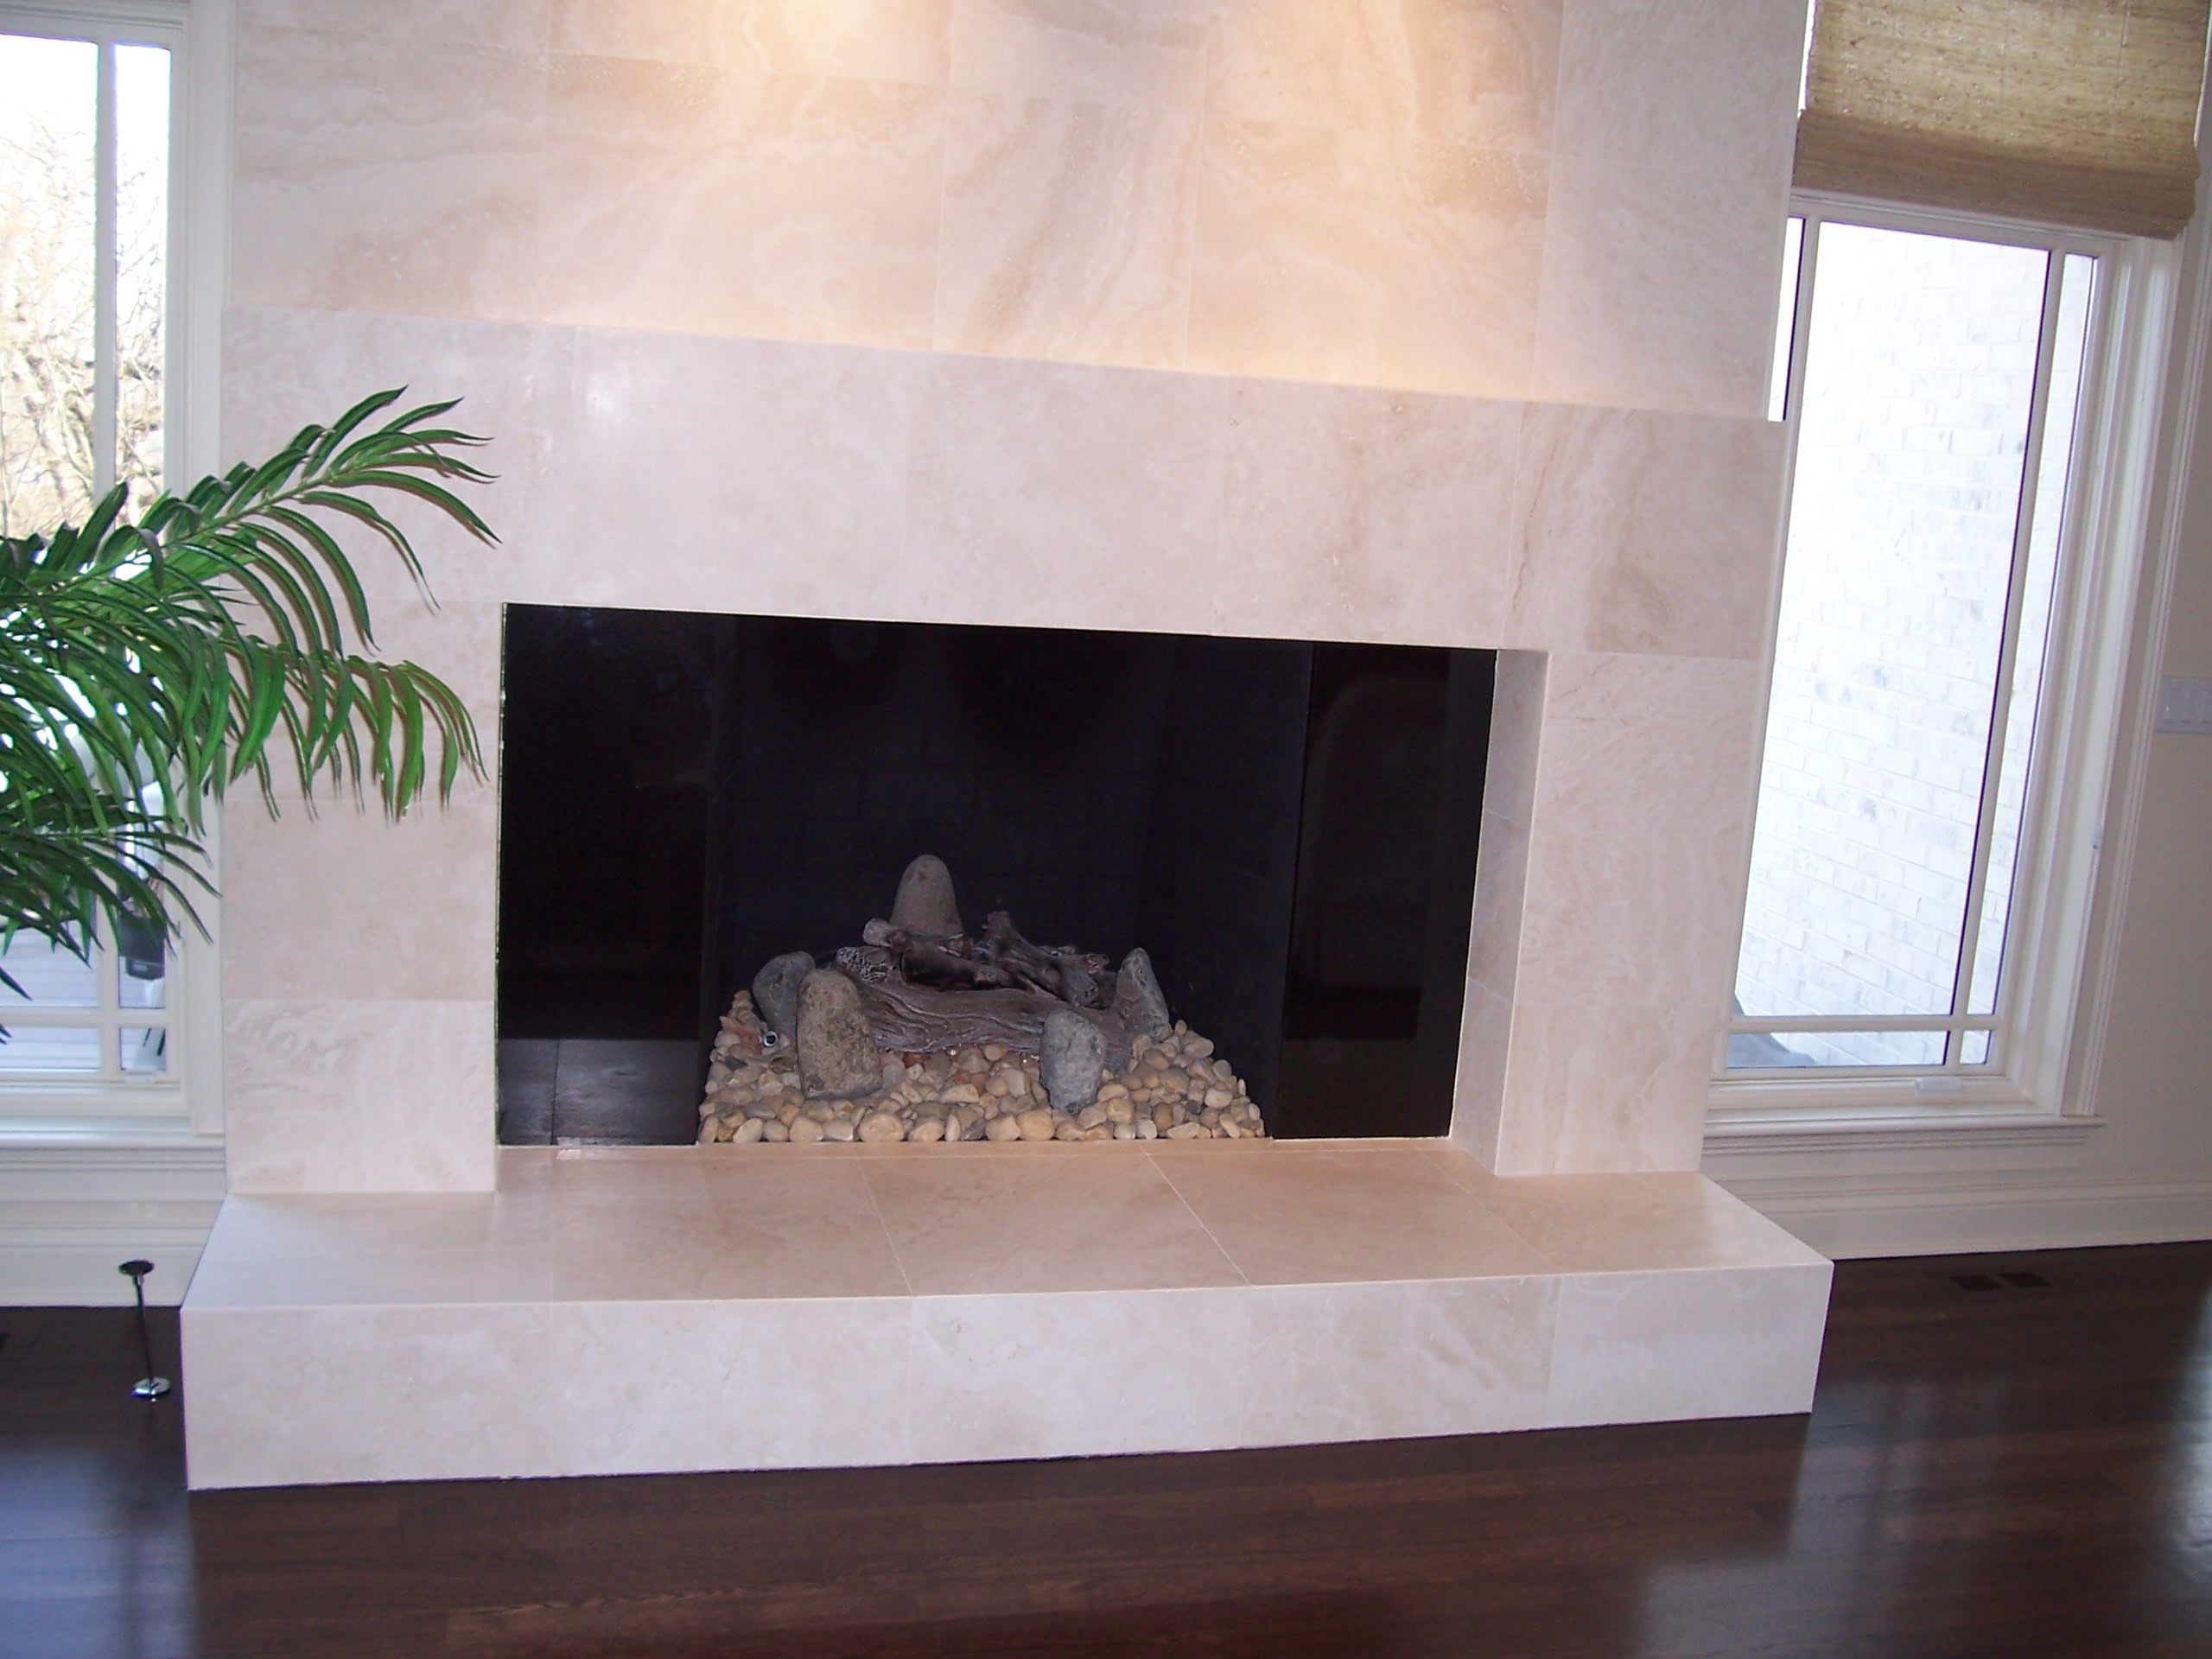 Nothing is more personal than a custom-designed fireplace. The appearance of a well-crafted wall unit with stone tiles and mantle can dominate the entire living